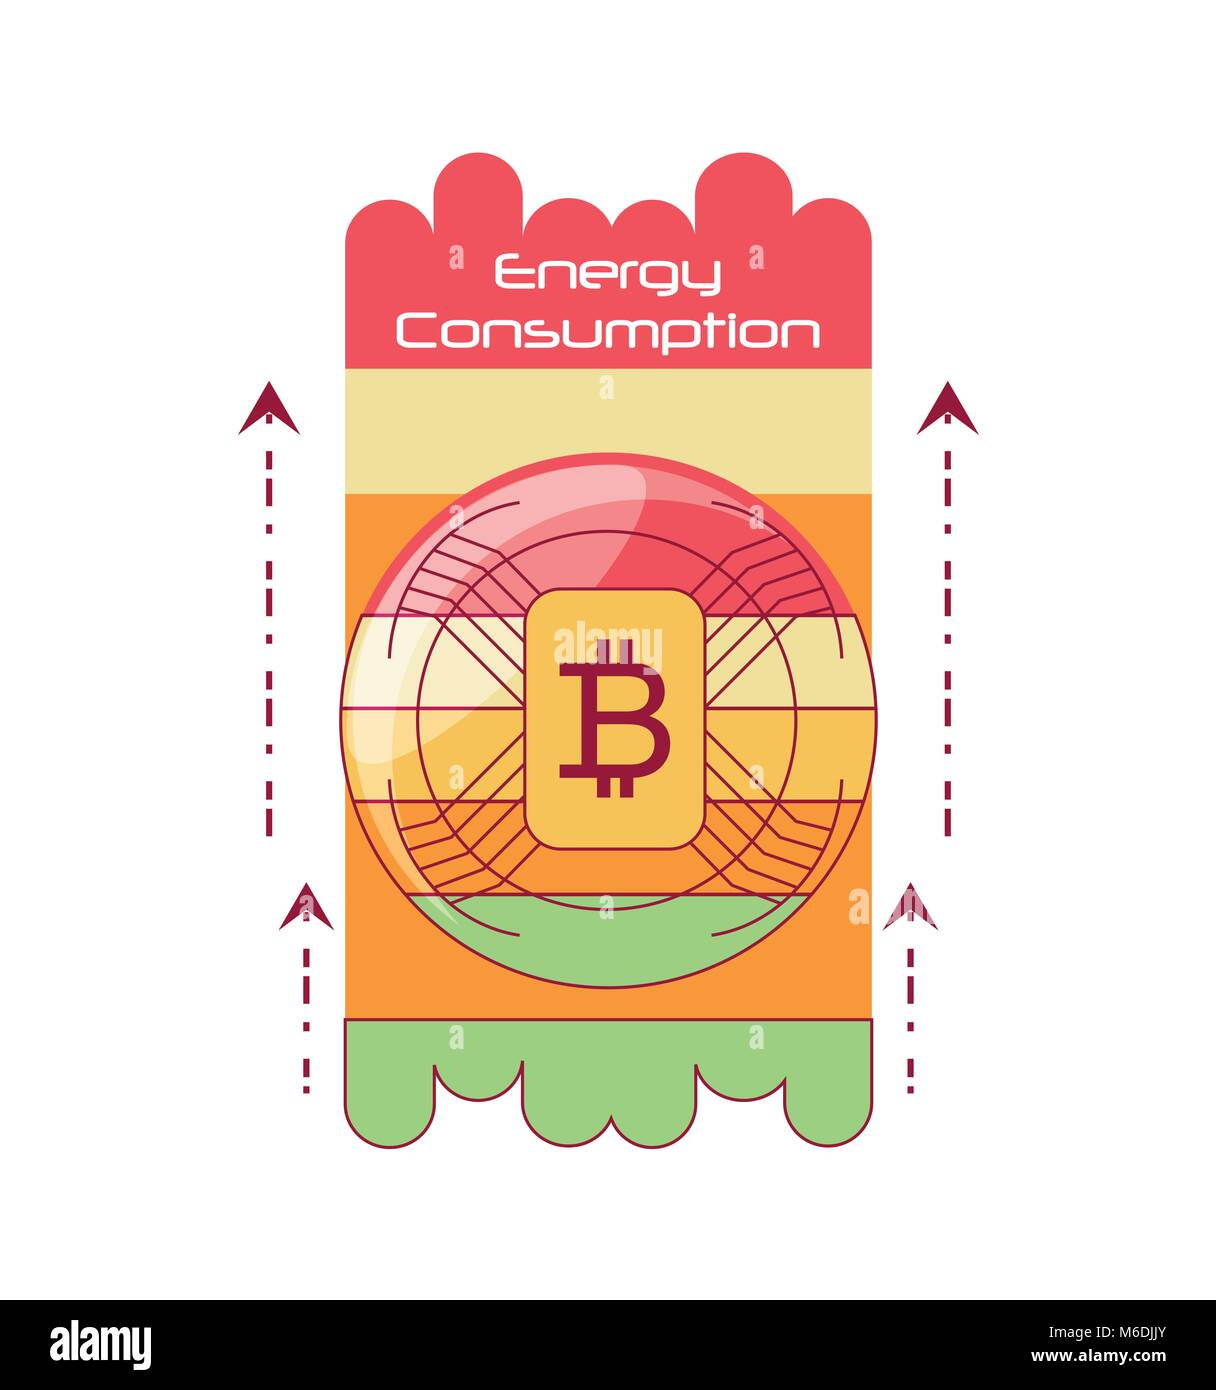 Energy Consumption design with bitcoin symbol and arrows over white background, colorful design vector illustration - Stock Image